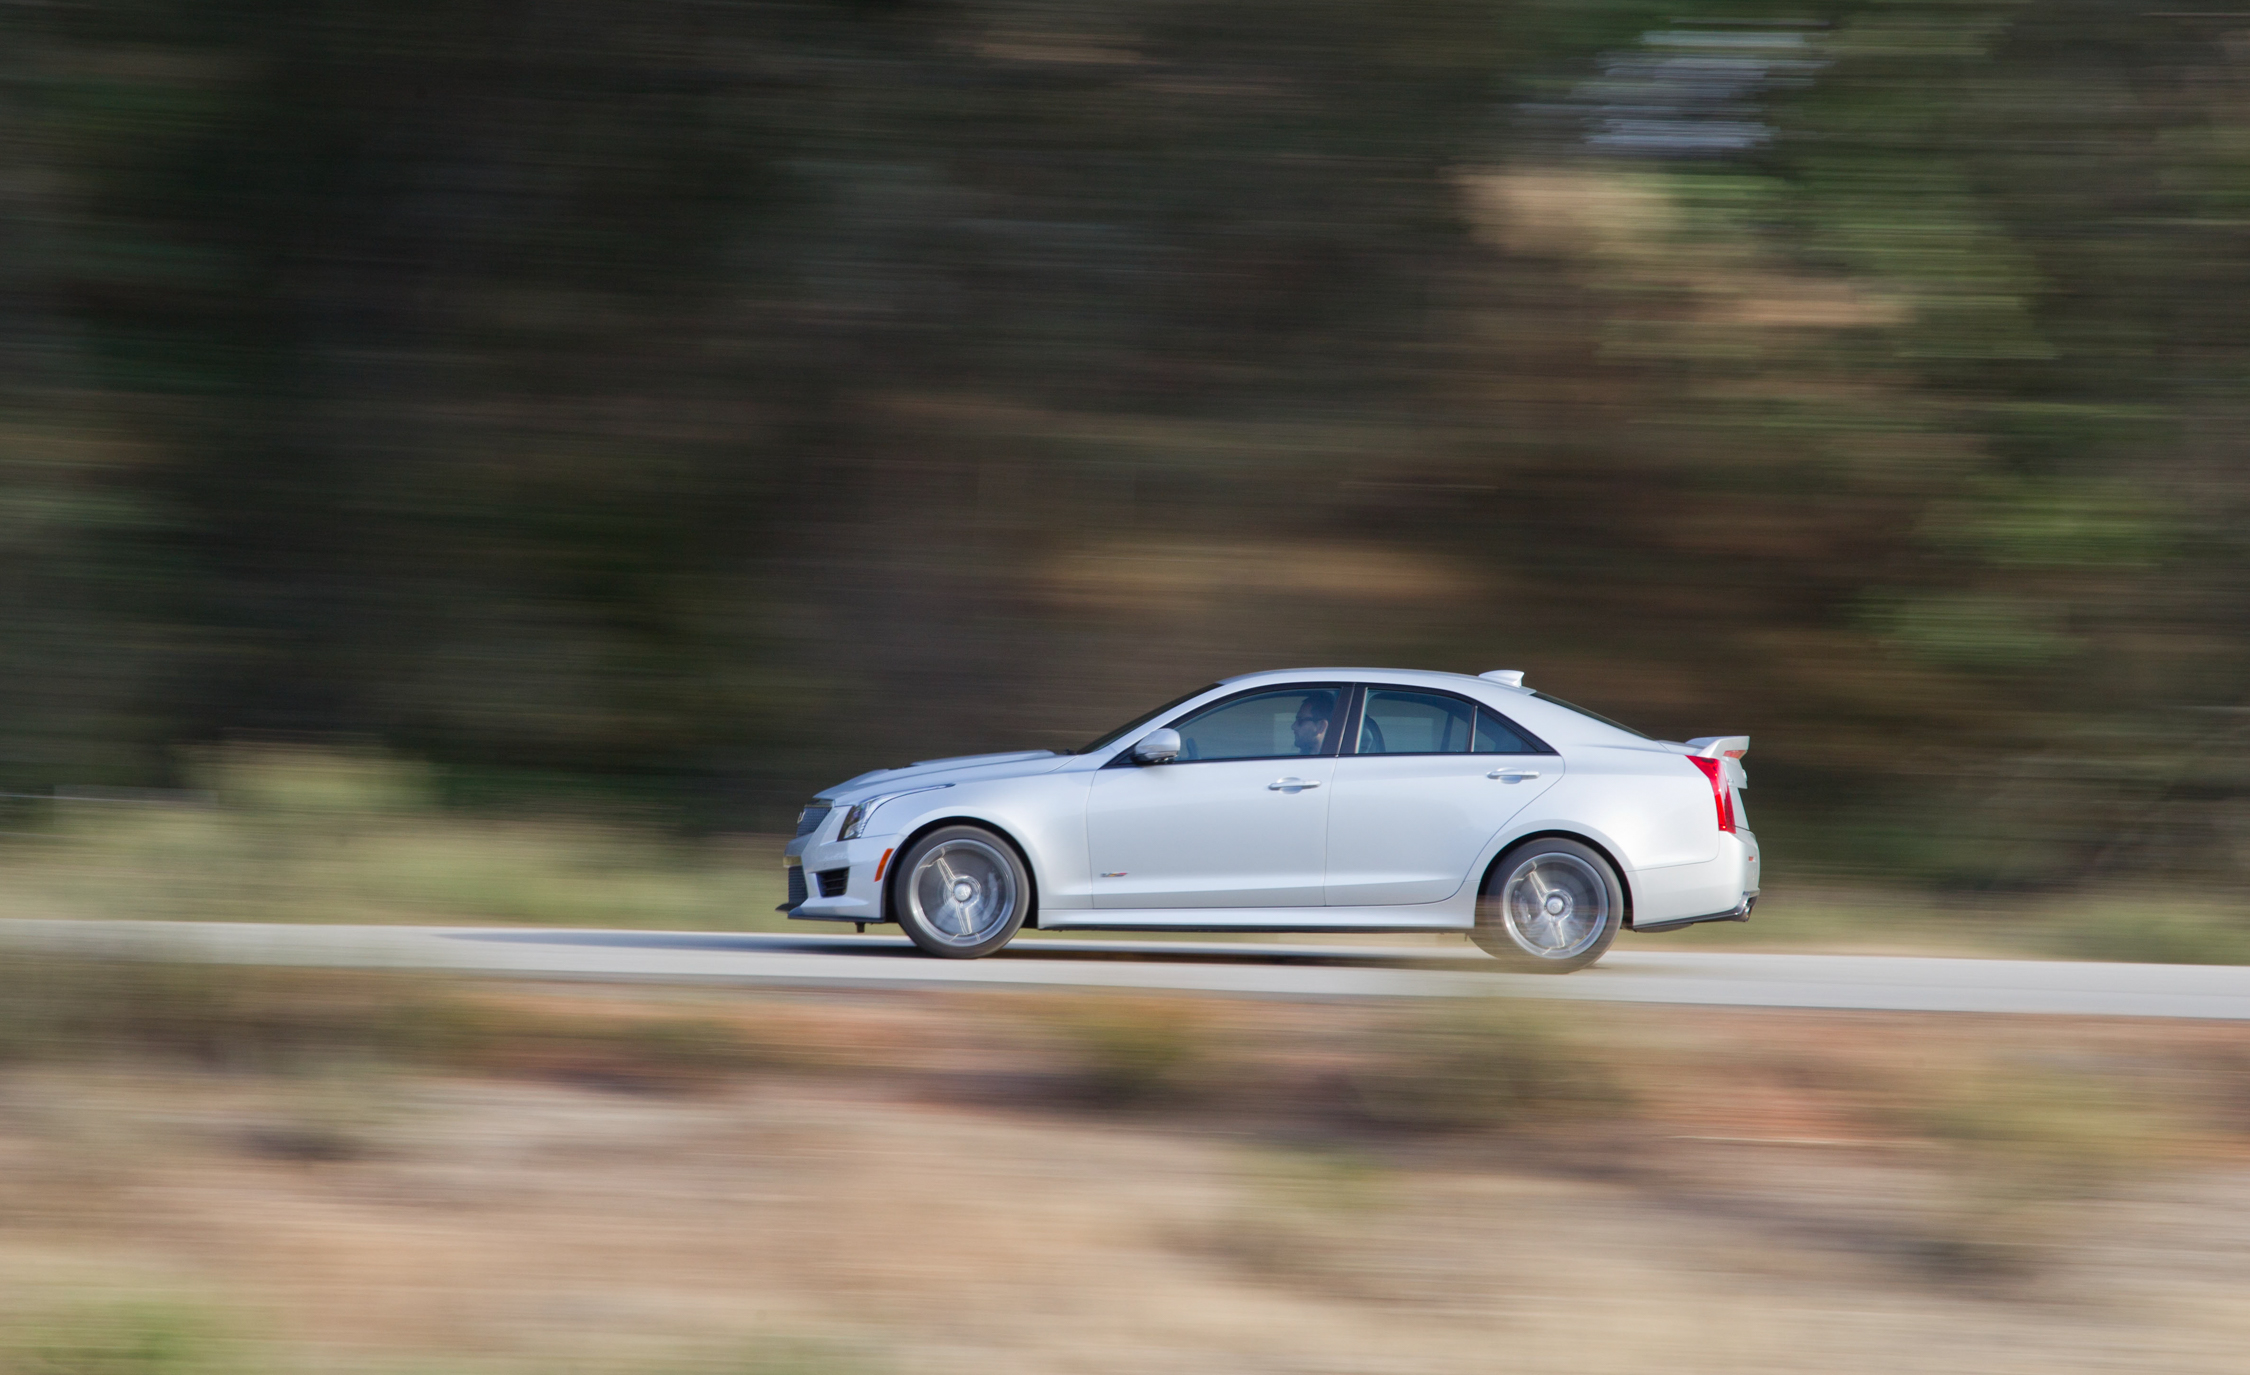 2016 Cadillac ATS-V Exterior in Motion